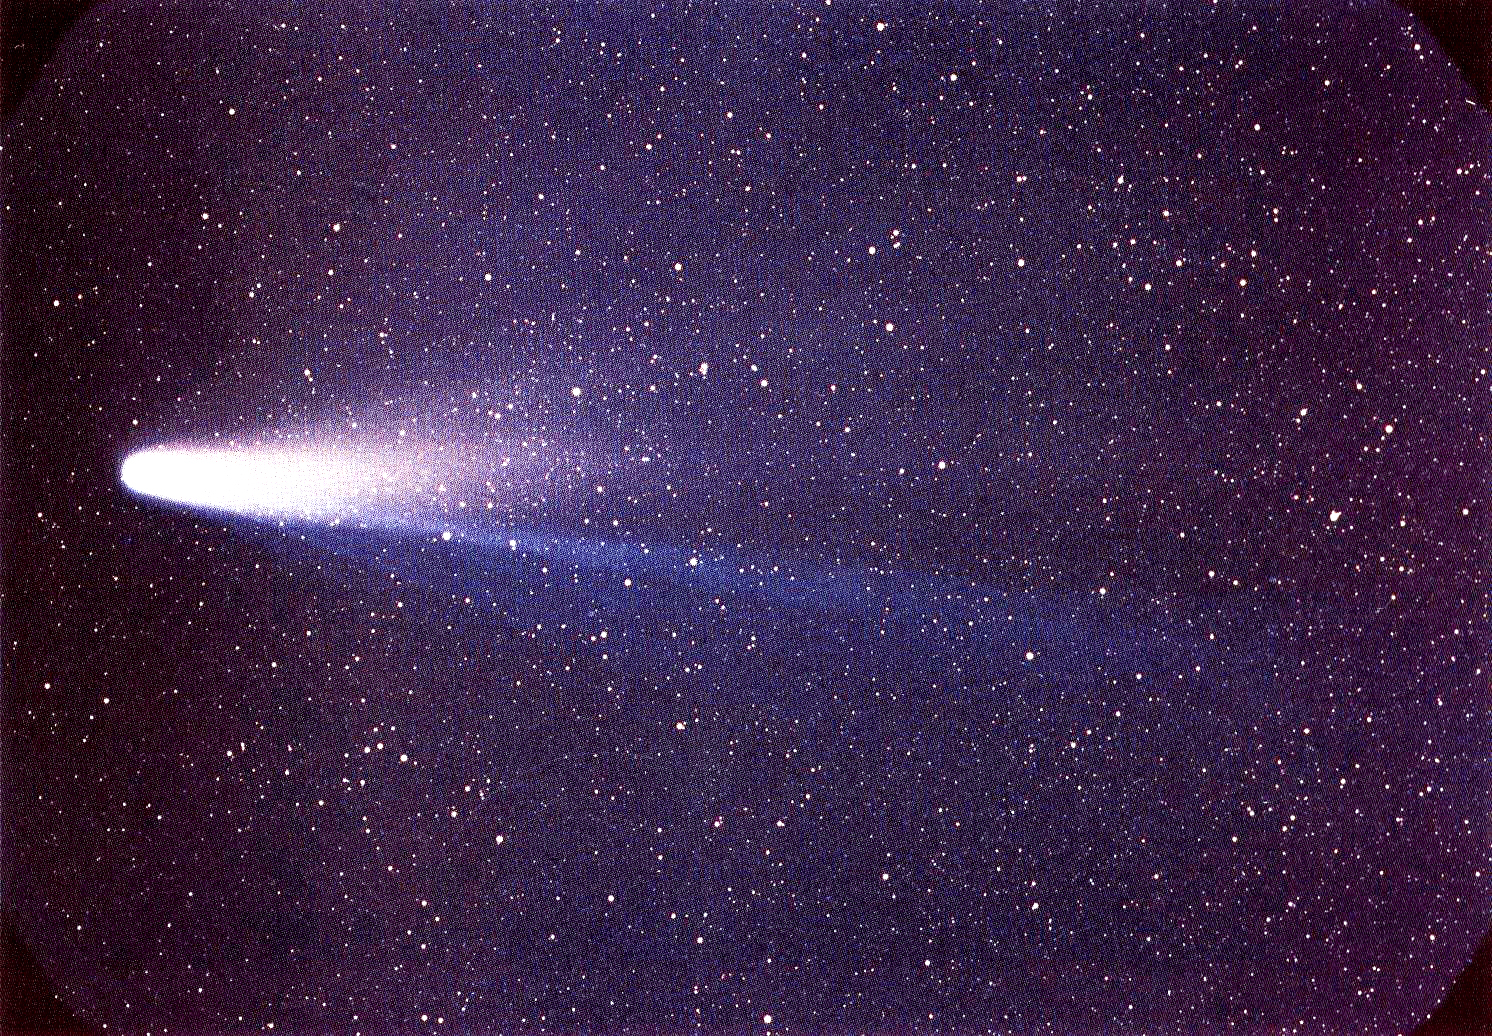 http://upload.wikimedia.org/wikipedia/commons/2/2a/Lspn_comet_halley.jpg